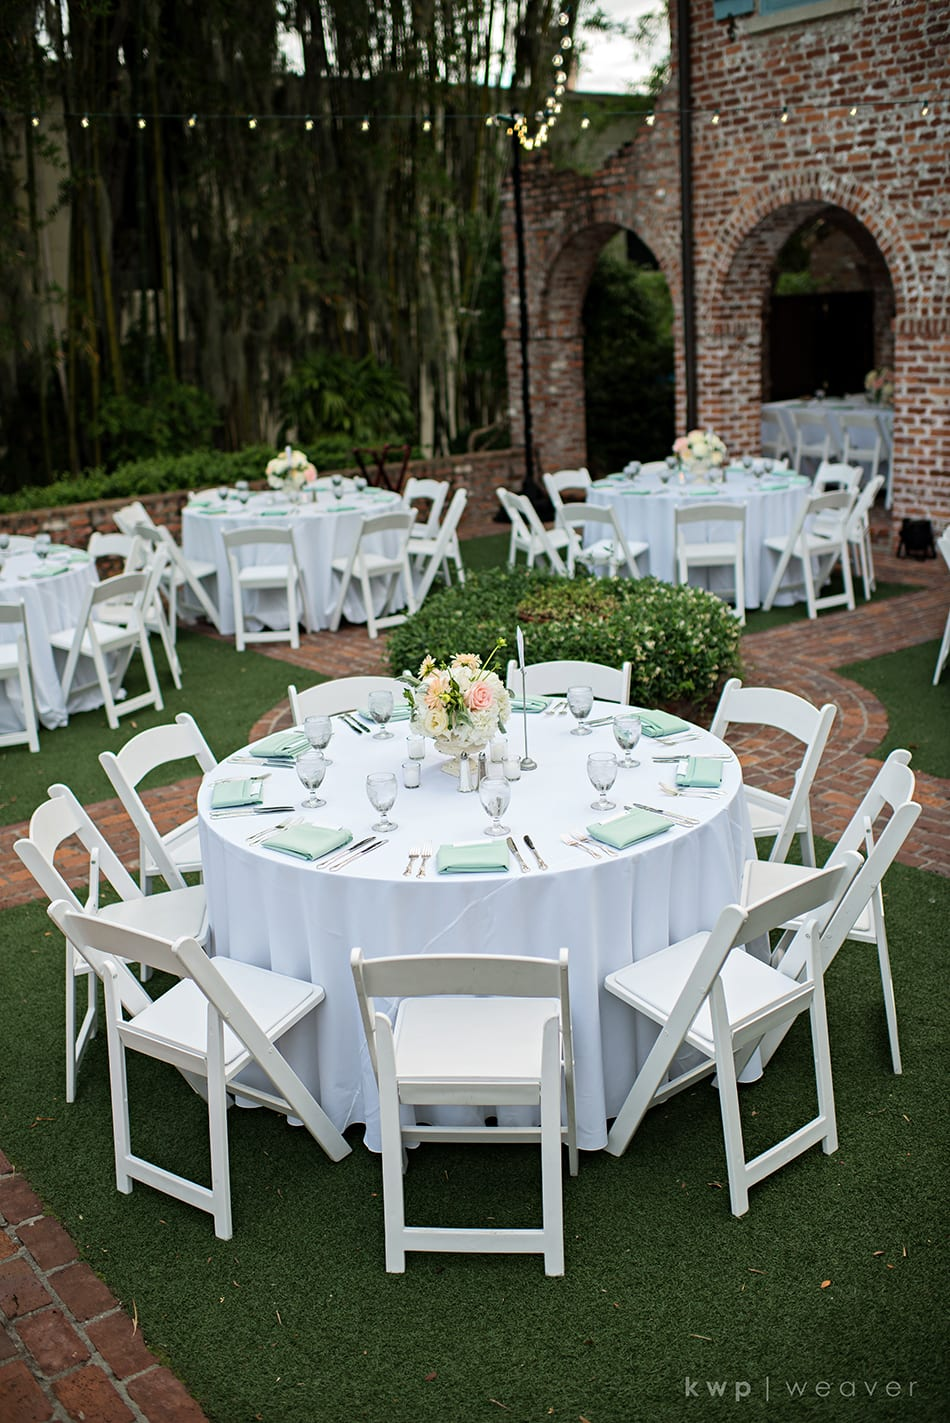 chair cover rentals langley and stool set white resin folding chairs orlando wedding party crisp neutral classic banquet bright